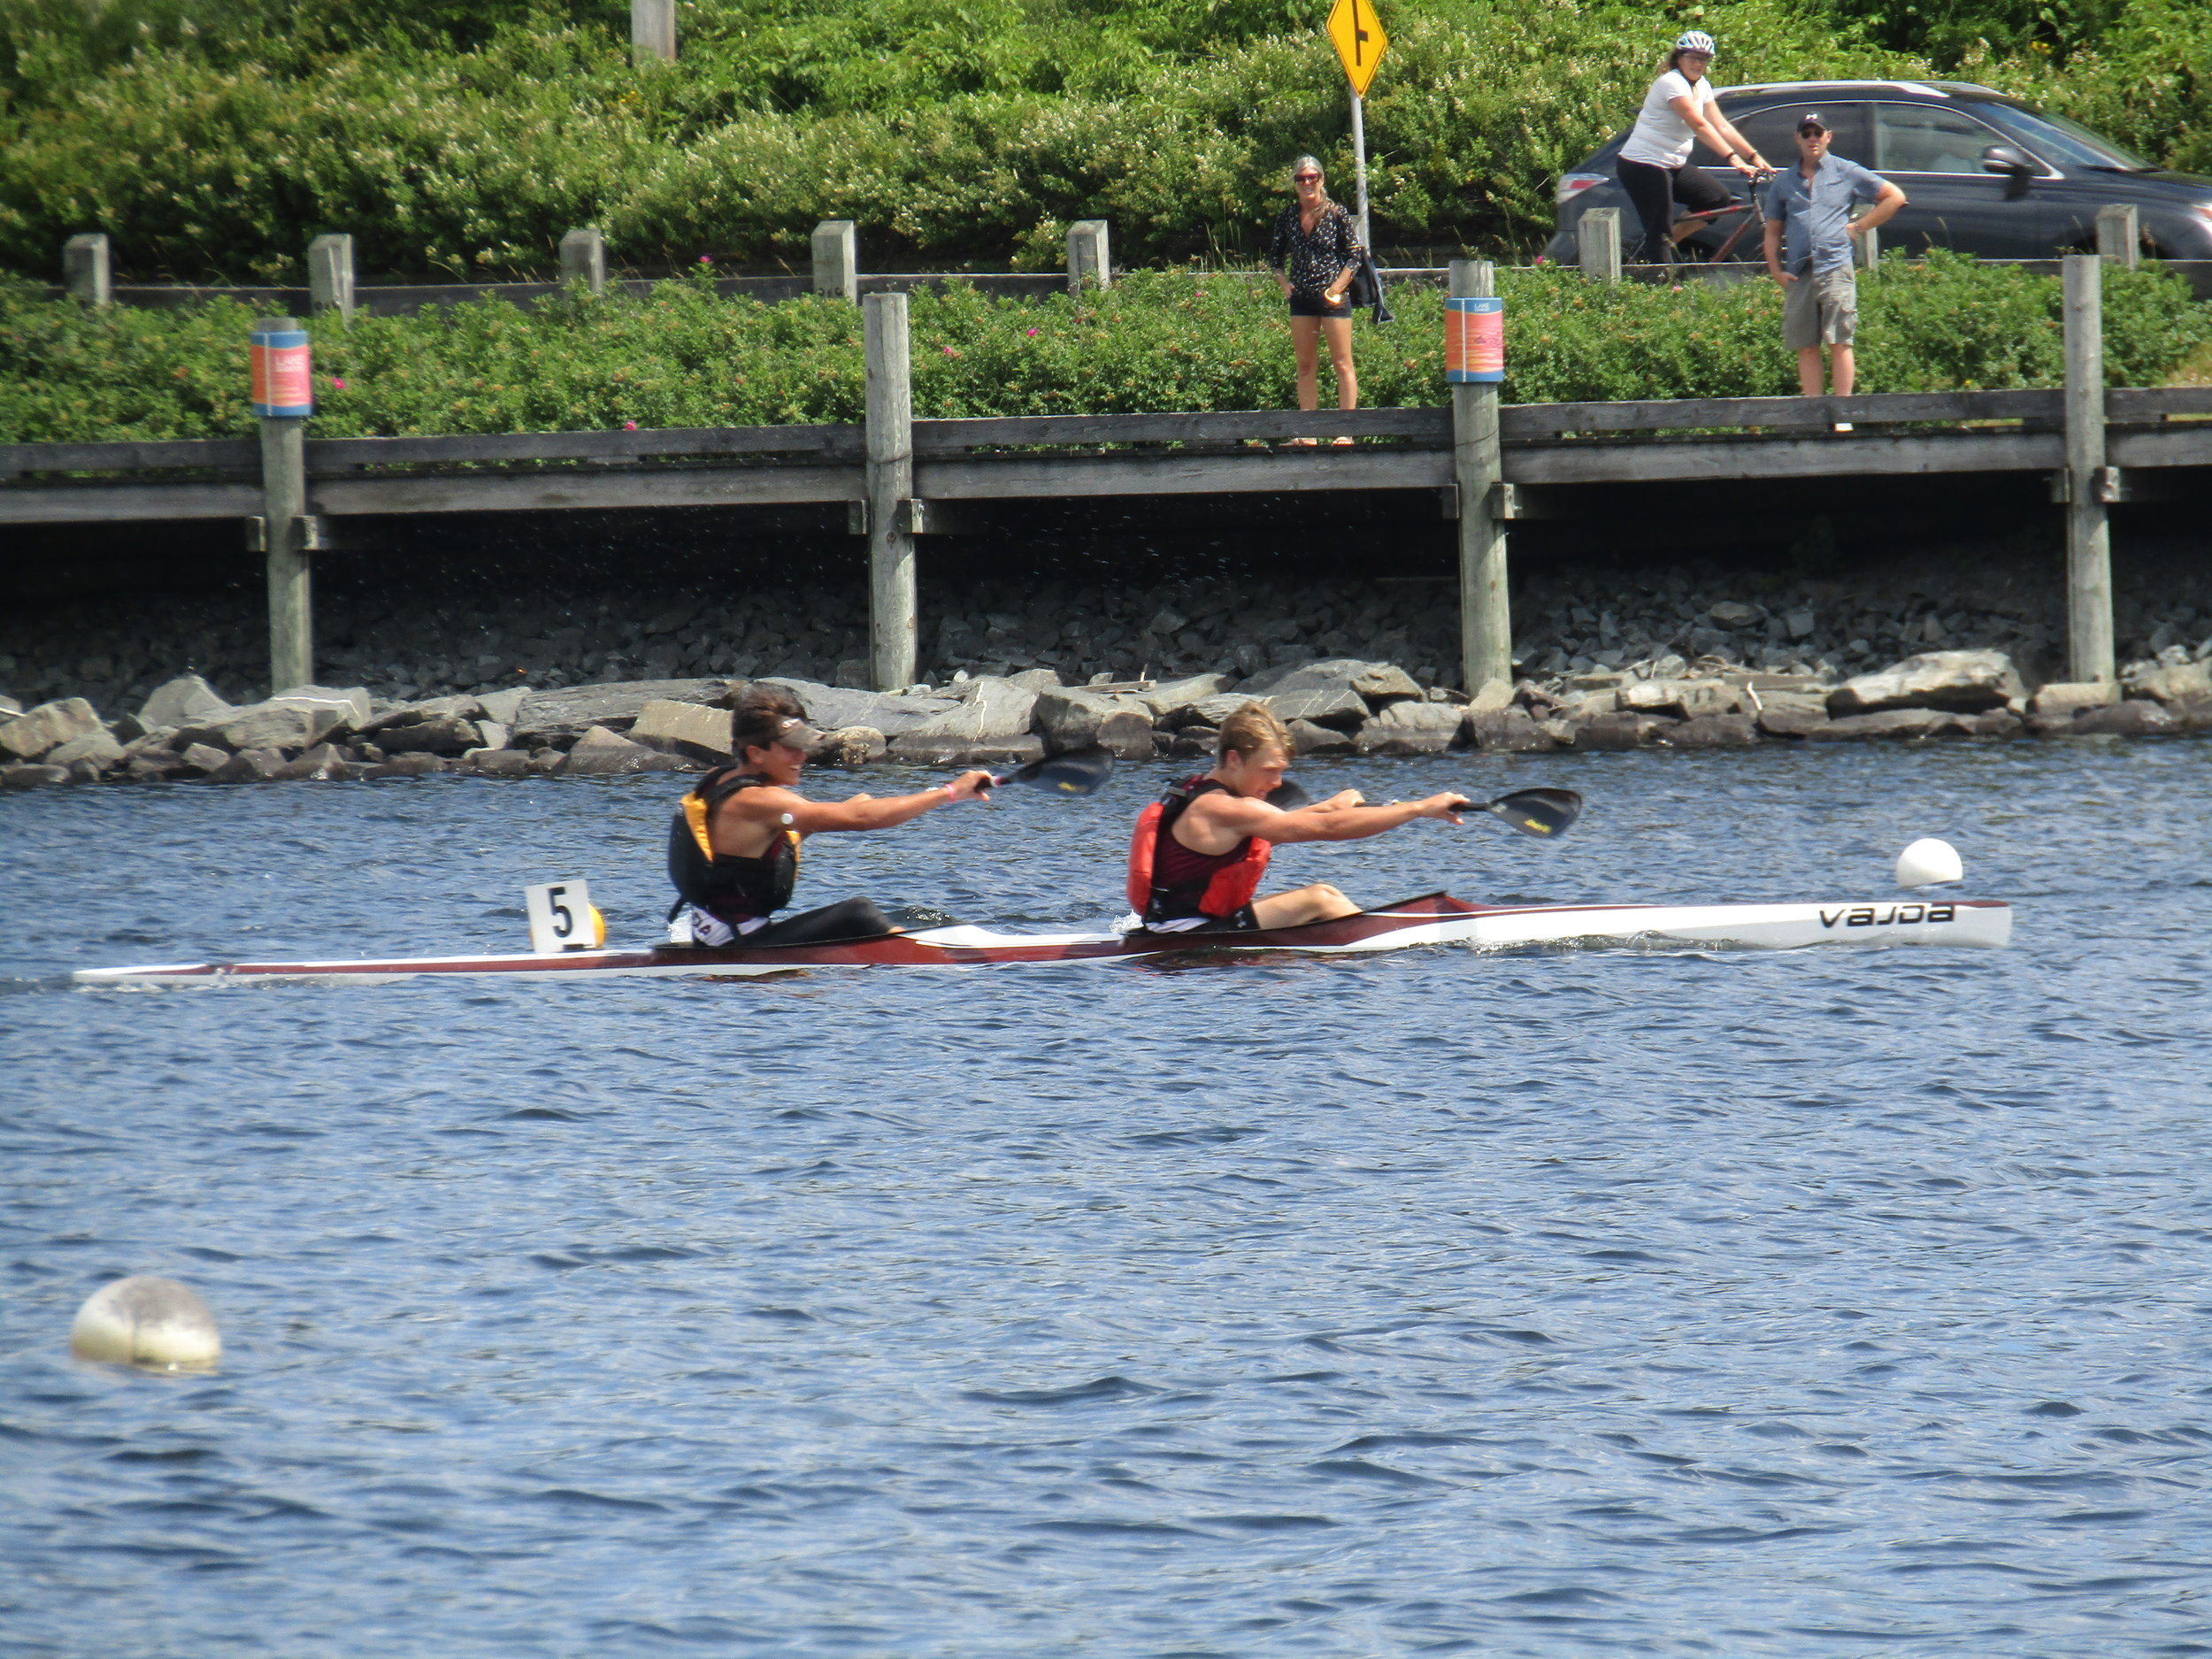 Ethan Firth (front) and Braden Reinhardt (back) competing in the Men's K2 1000m Event at the U14 #2 Regatta on Lake Banook.